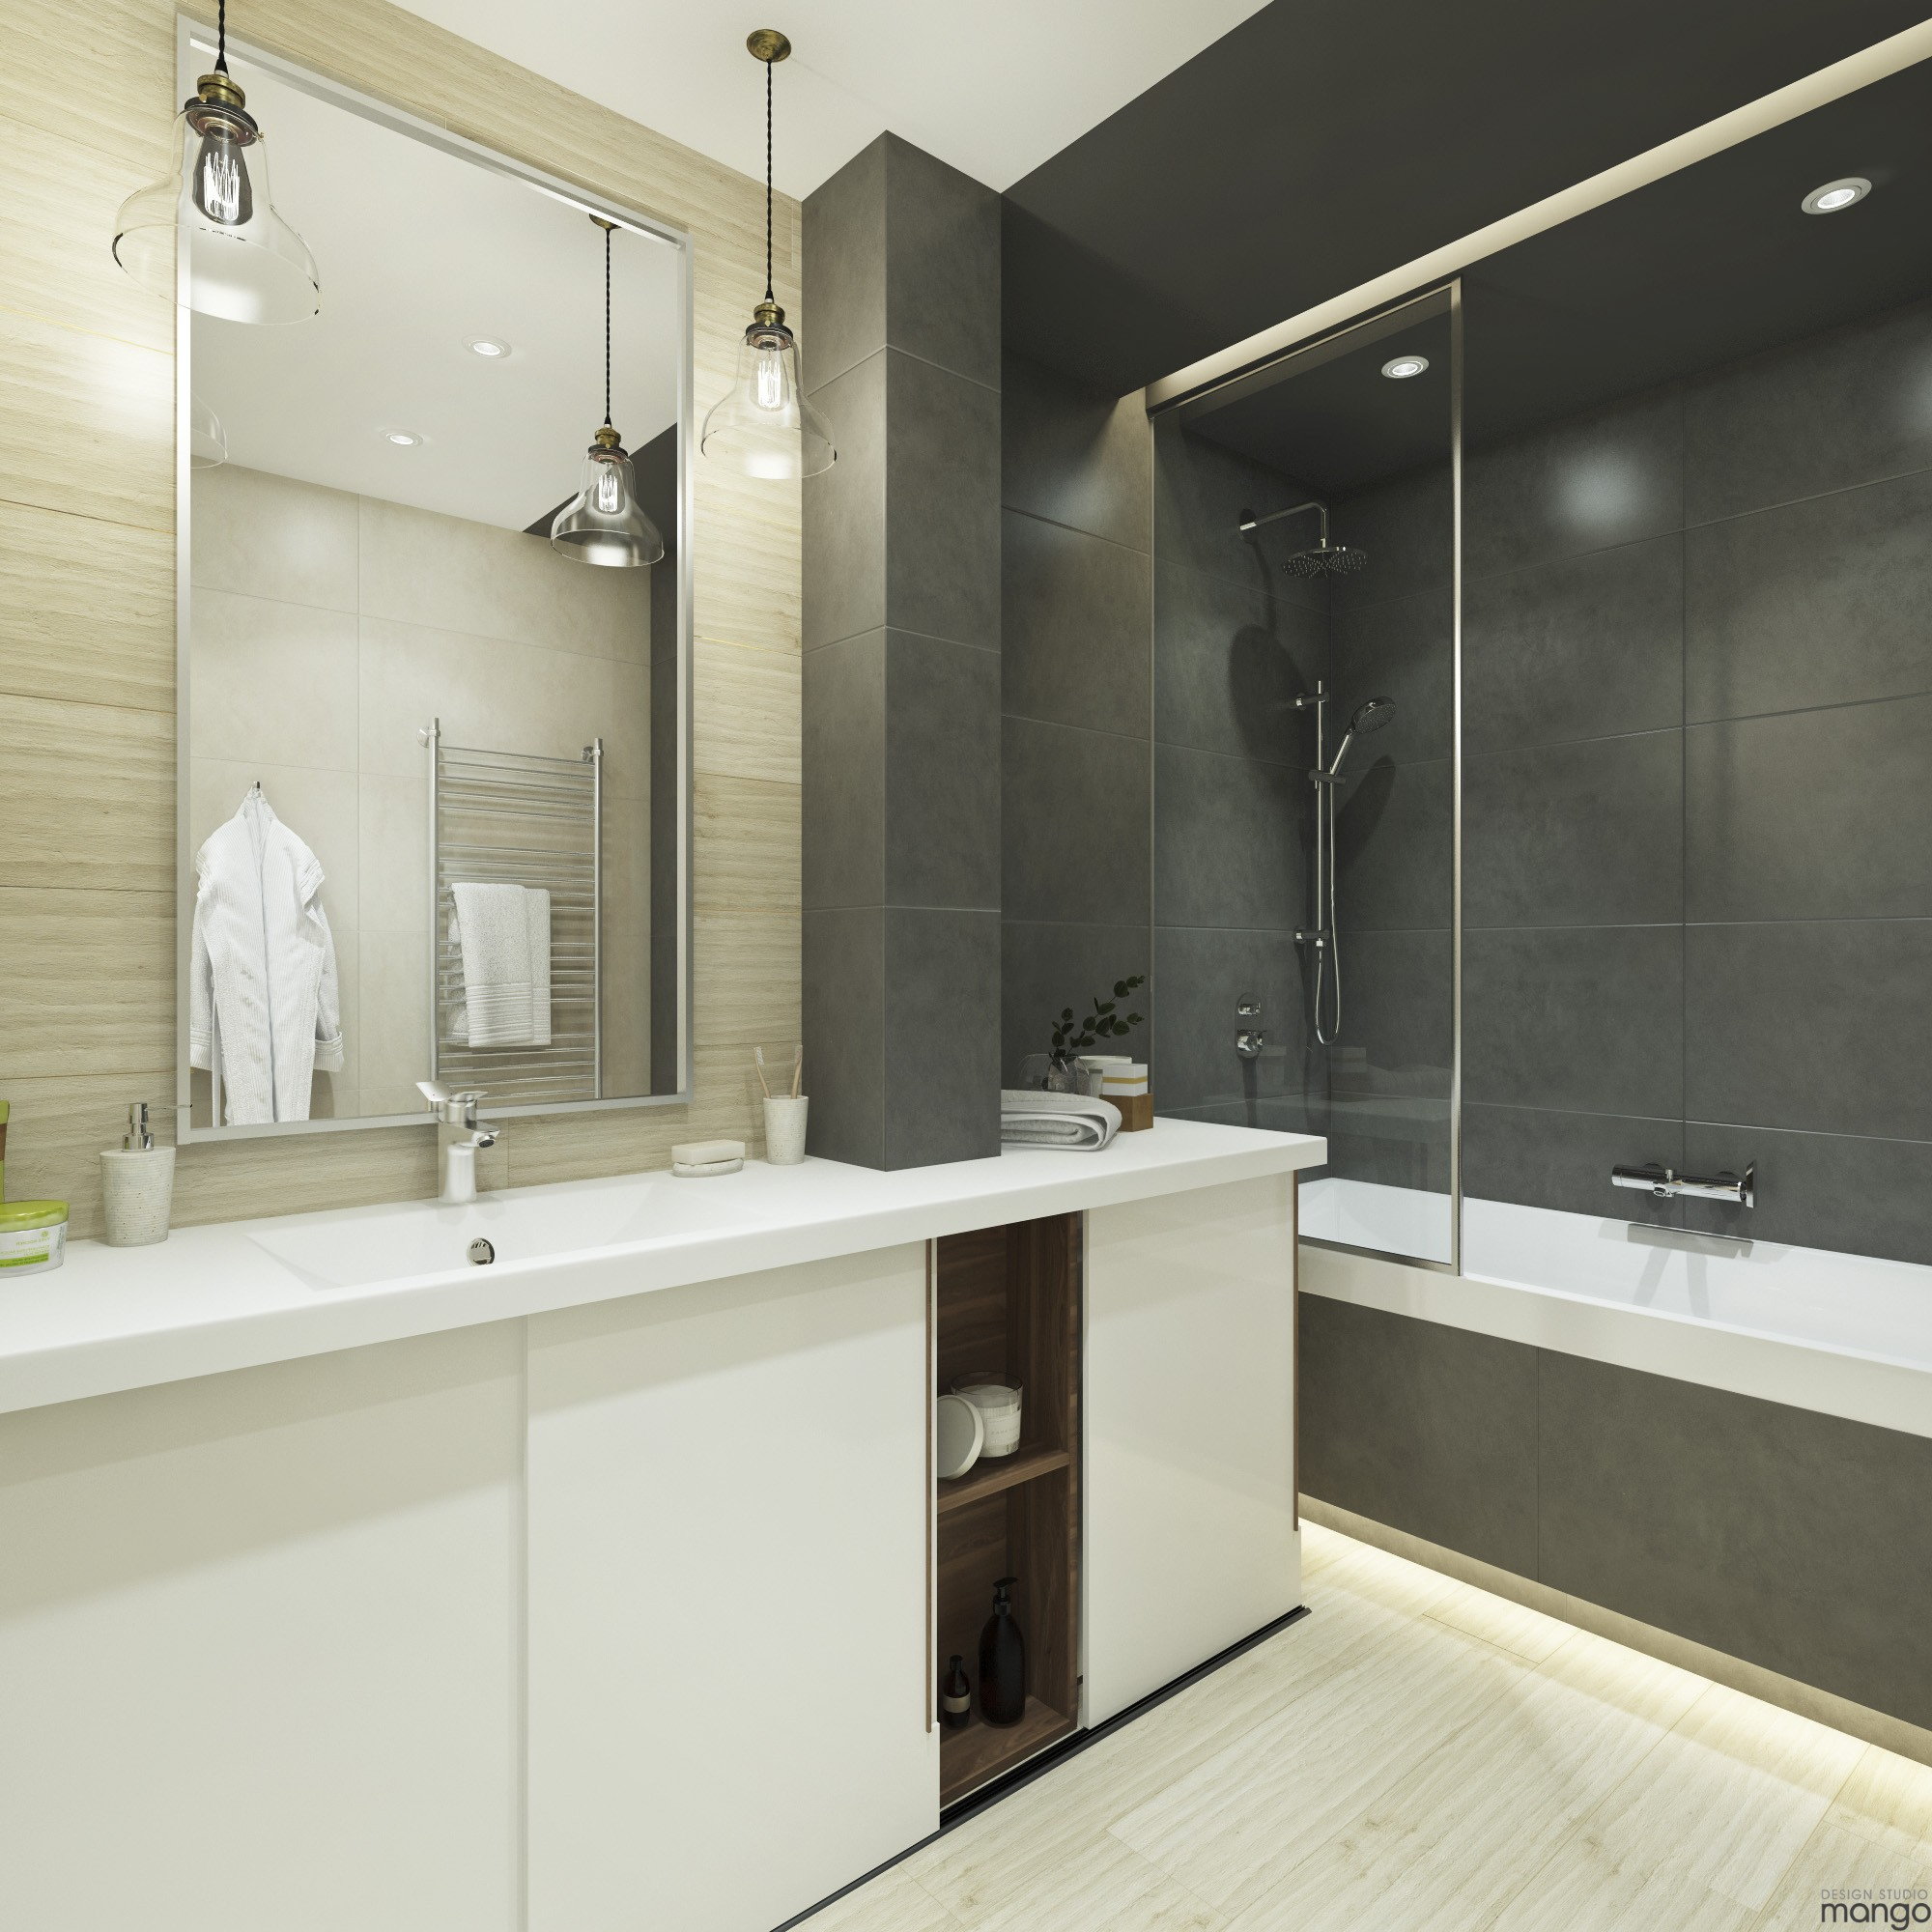 Modern Small Bathroom Designs Combined With Variety of ... on Modern Small Bathroom  id=63625